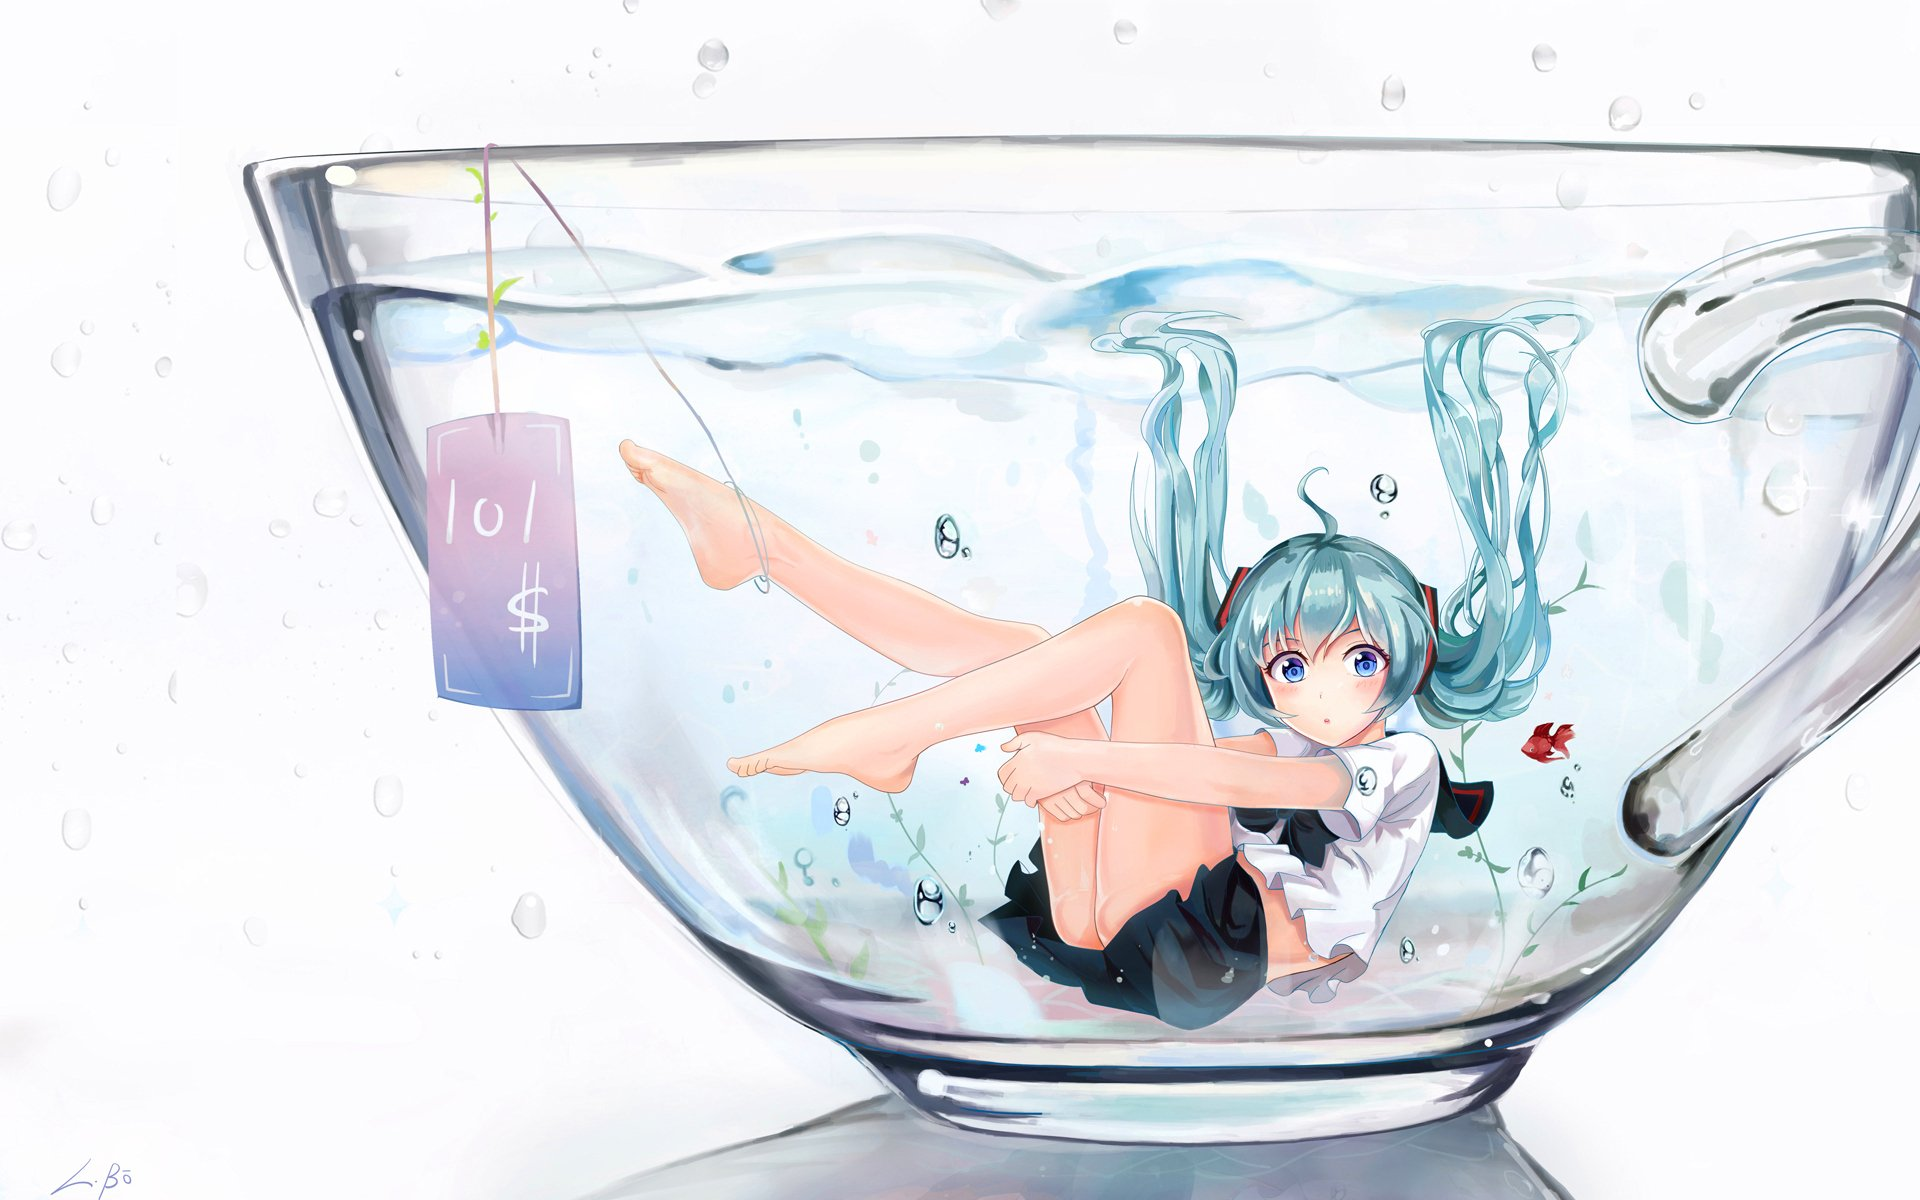 Anime - Vocaloid  Anime Hatsune Miku Twintails Cup Water Blue Hair Blue Eyes Skirt Girl Wallpaper